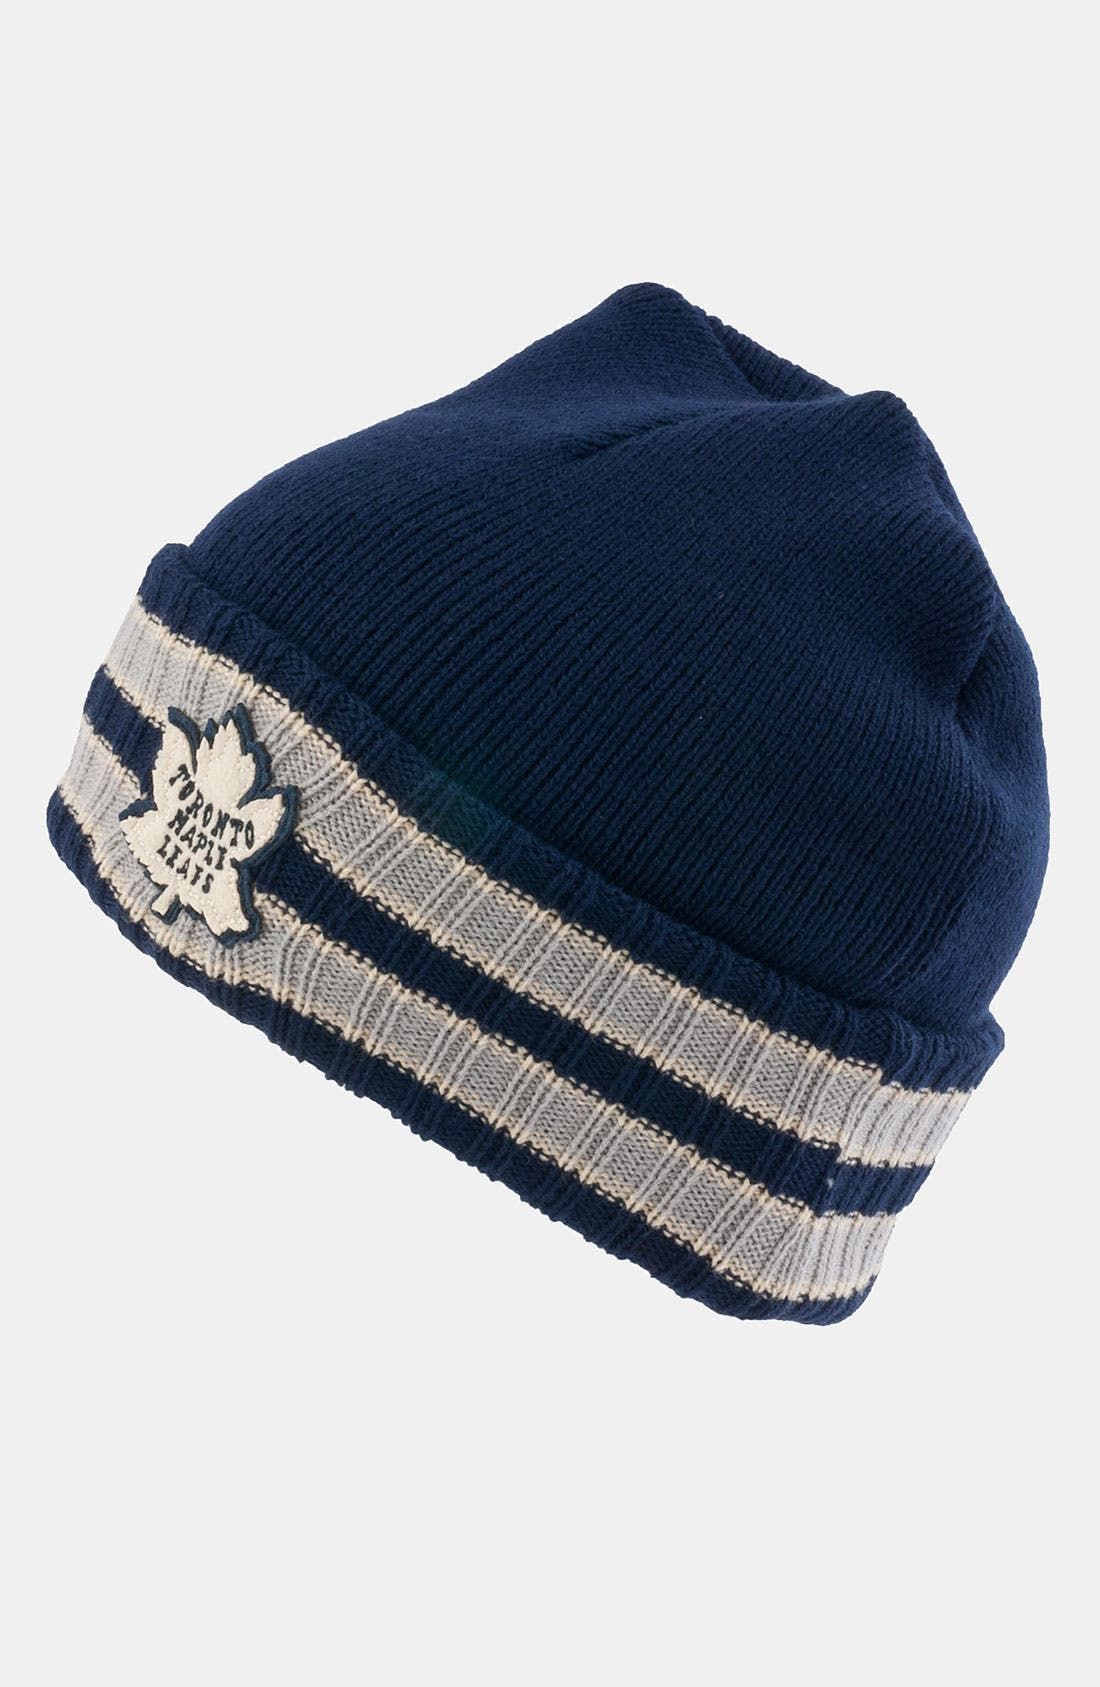 Alternate Image 1 Selected - American Needle 'Toronto Maple Leafs - Slash' Knit Hat